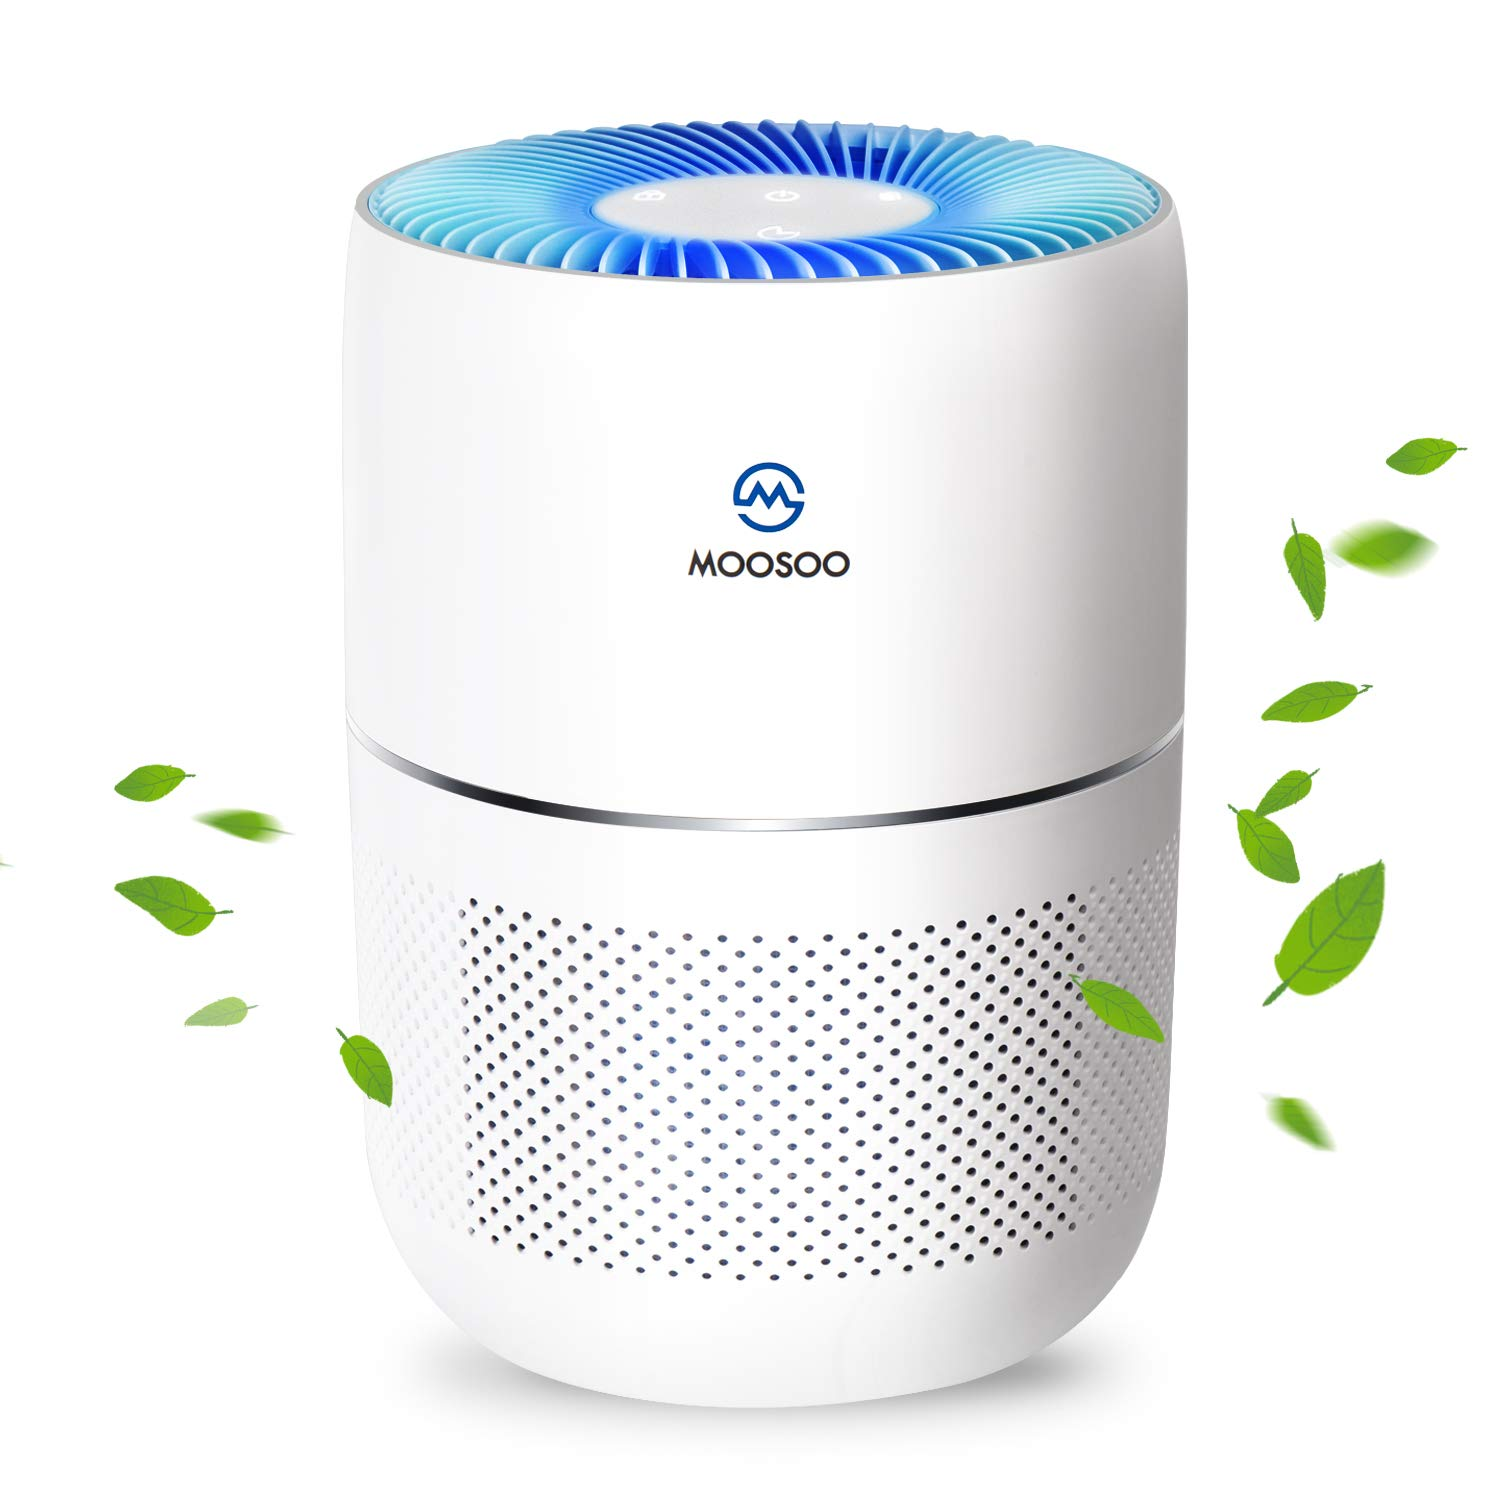 MooSoo Air Purifier 4 Stage Filtration System